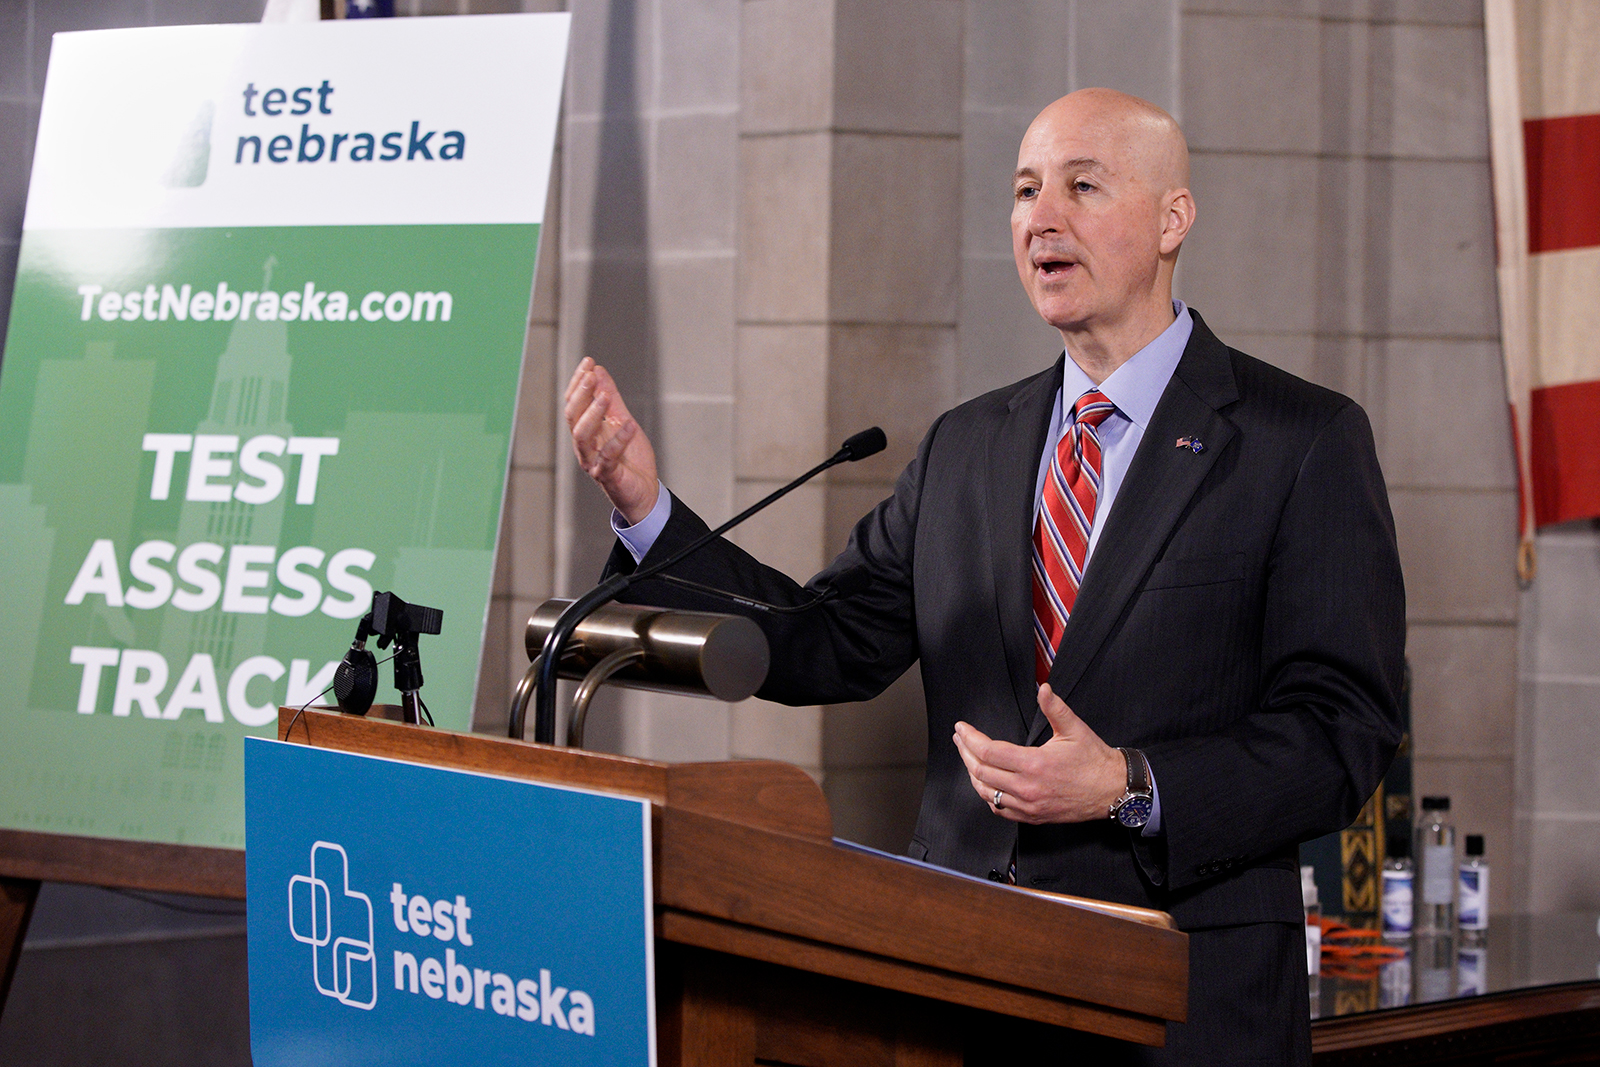 Gov. Pete Ricketts speaks at a news conference in Lincoln, Nebraska, on May 1.